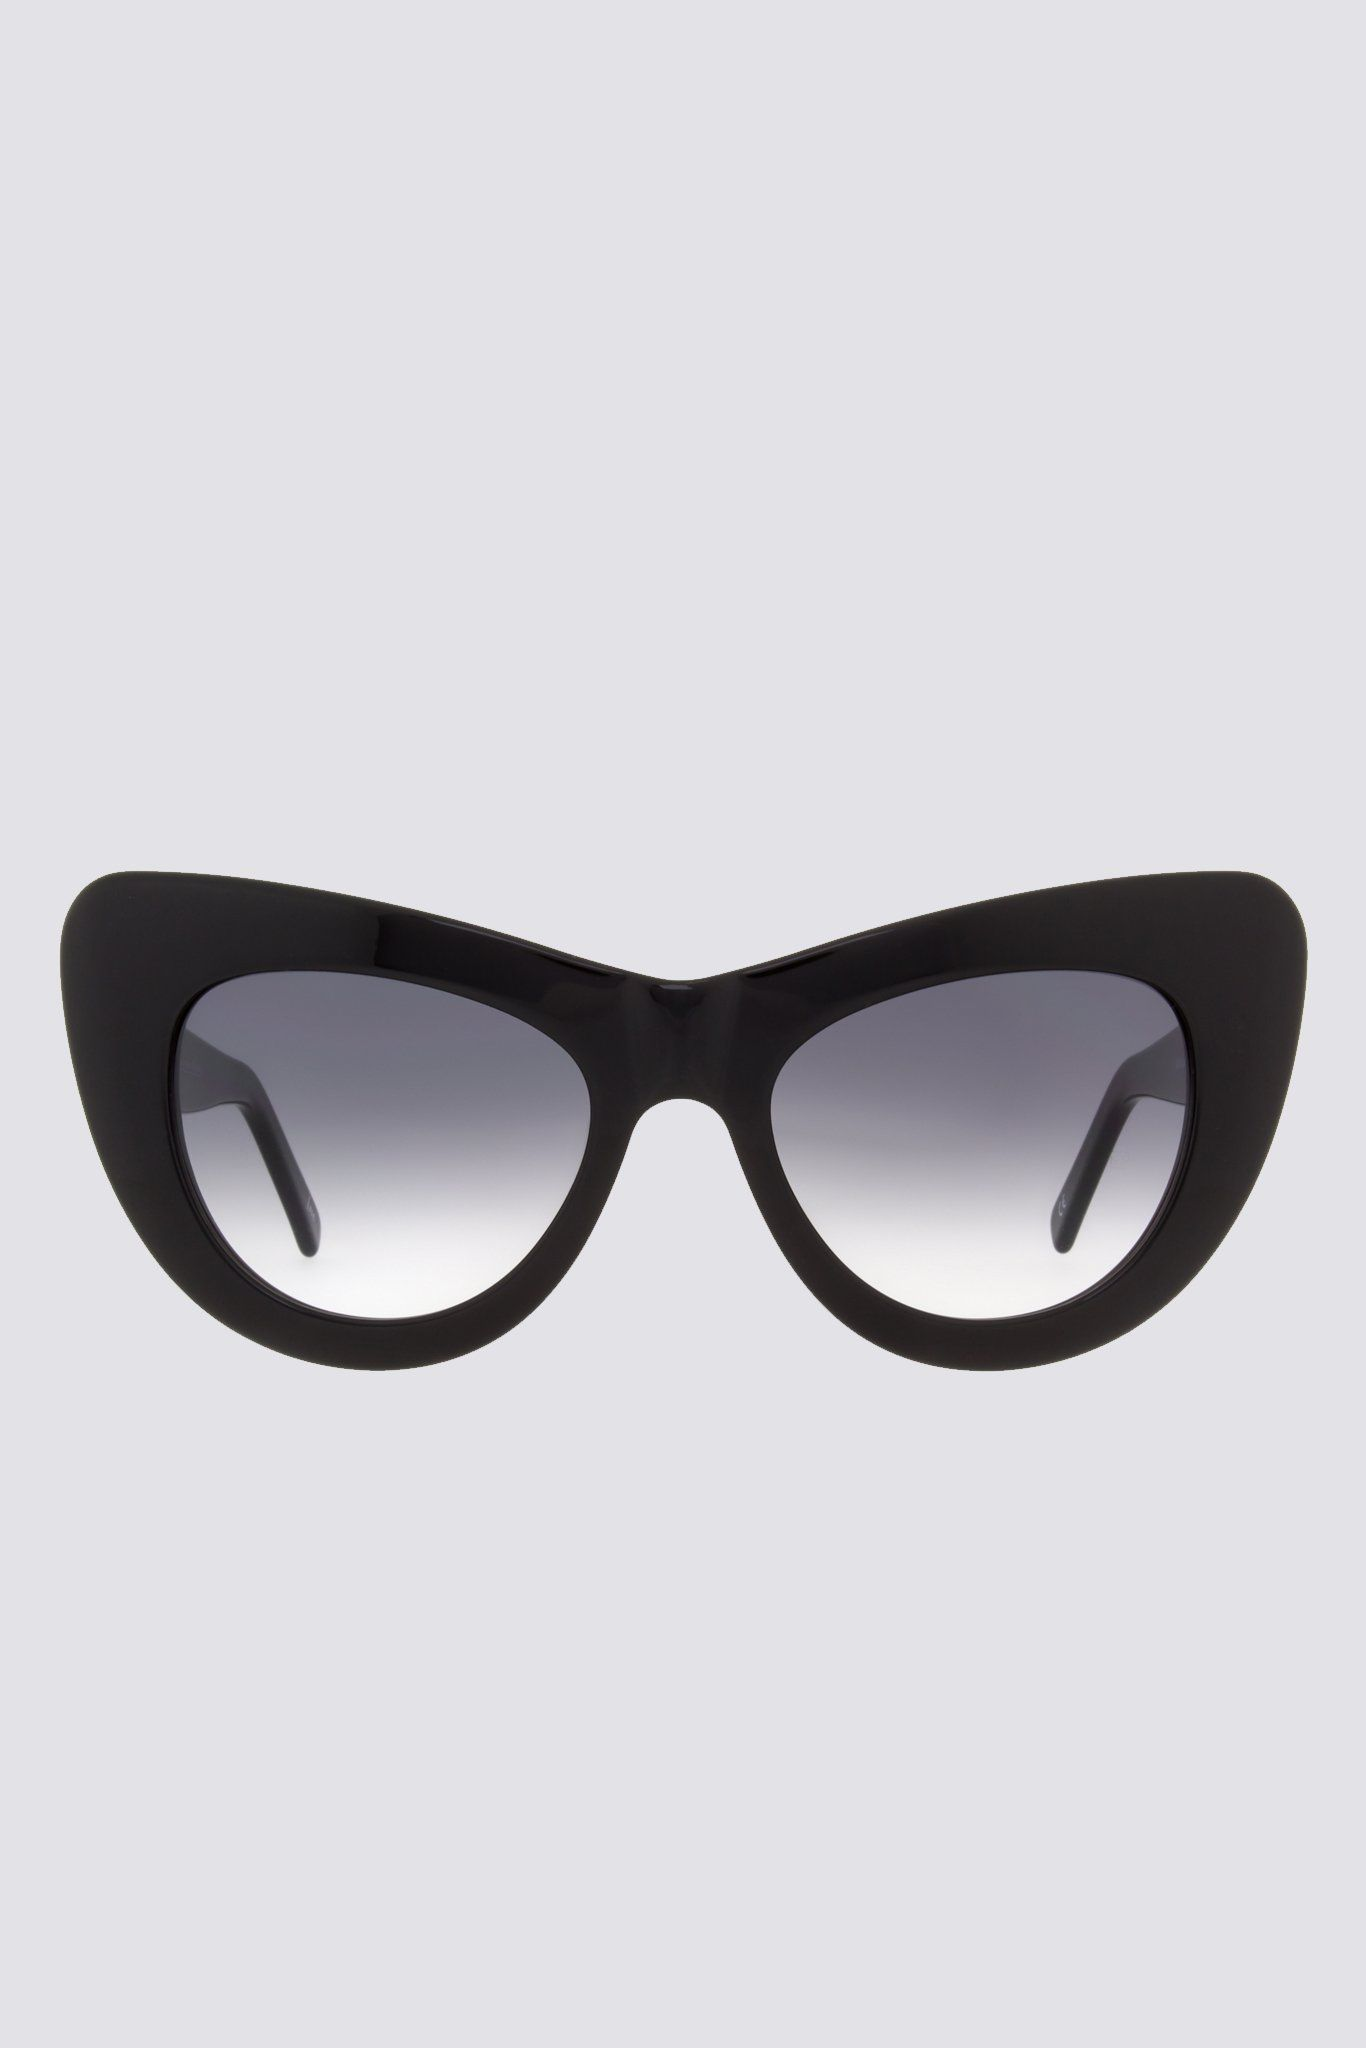 Andy Wolf Sonnenbrille Jan PGfrHQYpJ